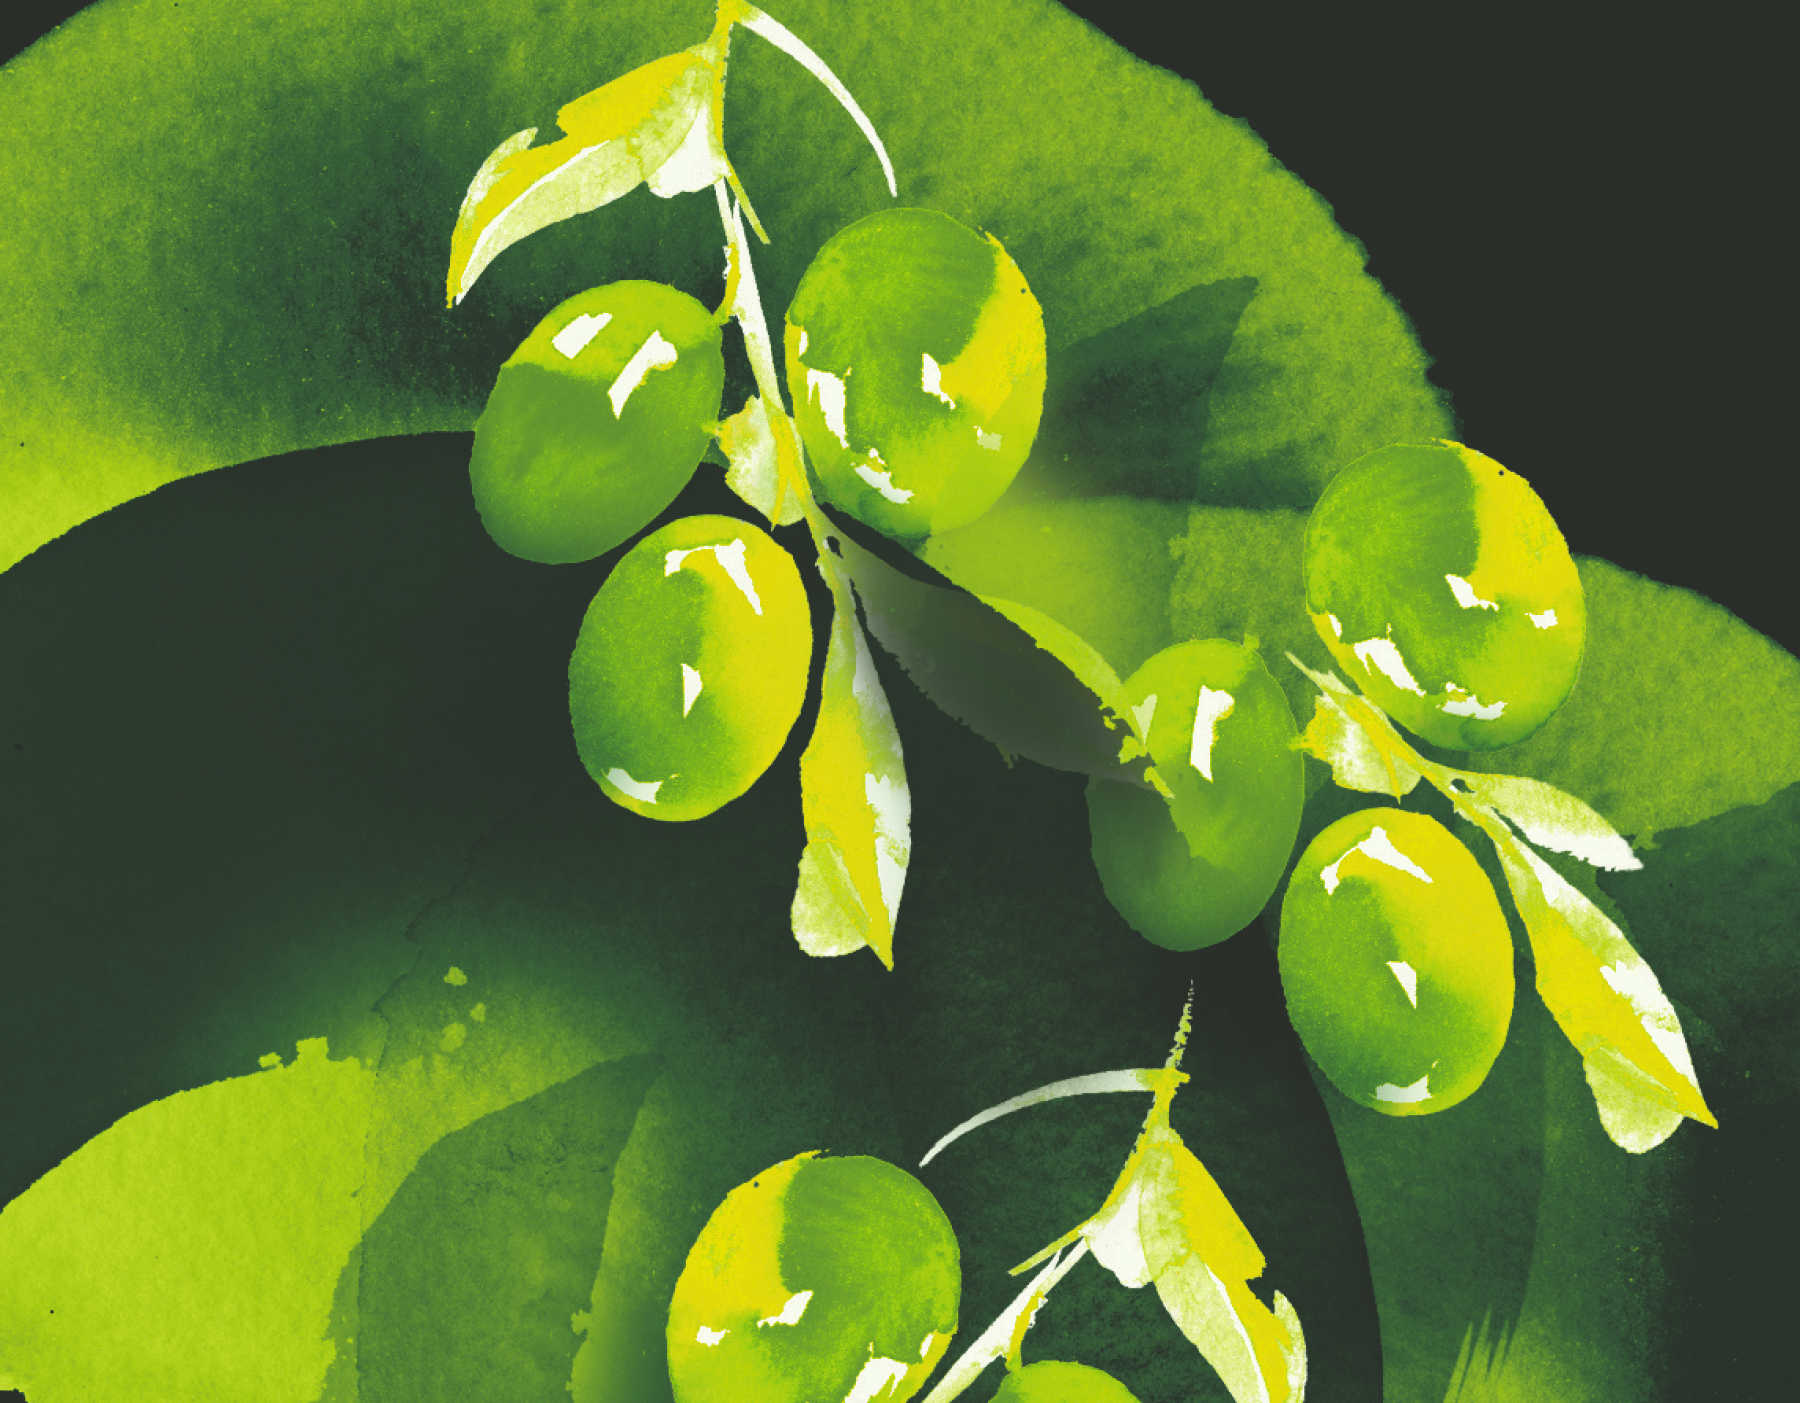 grapes illustrations green